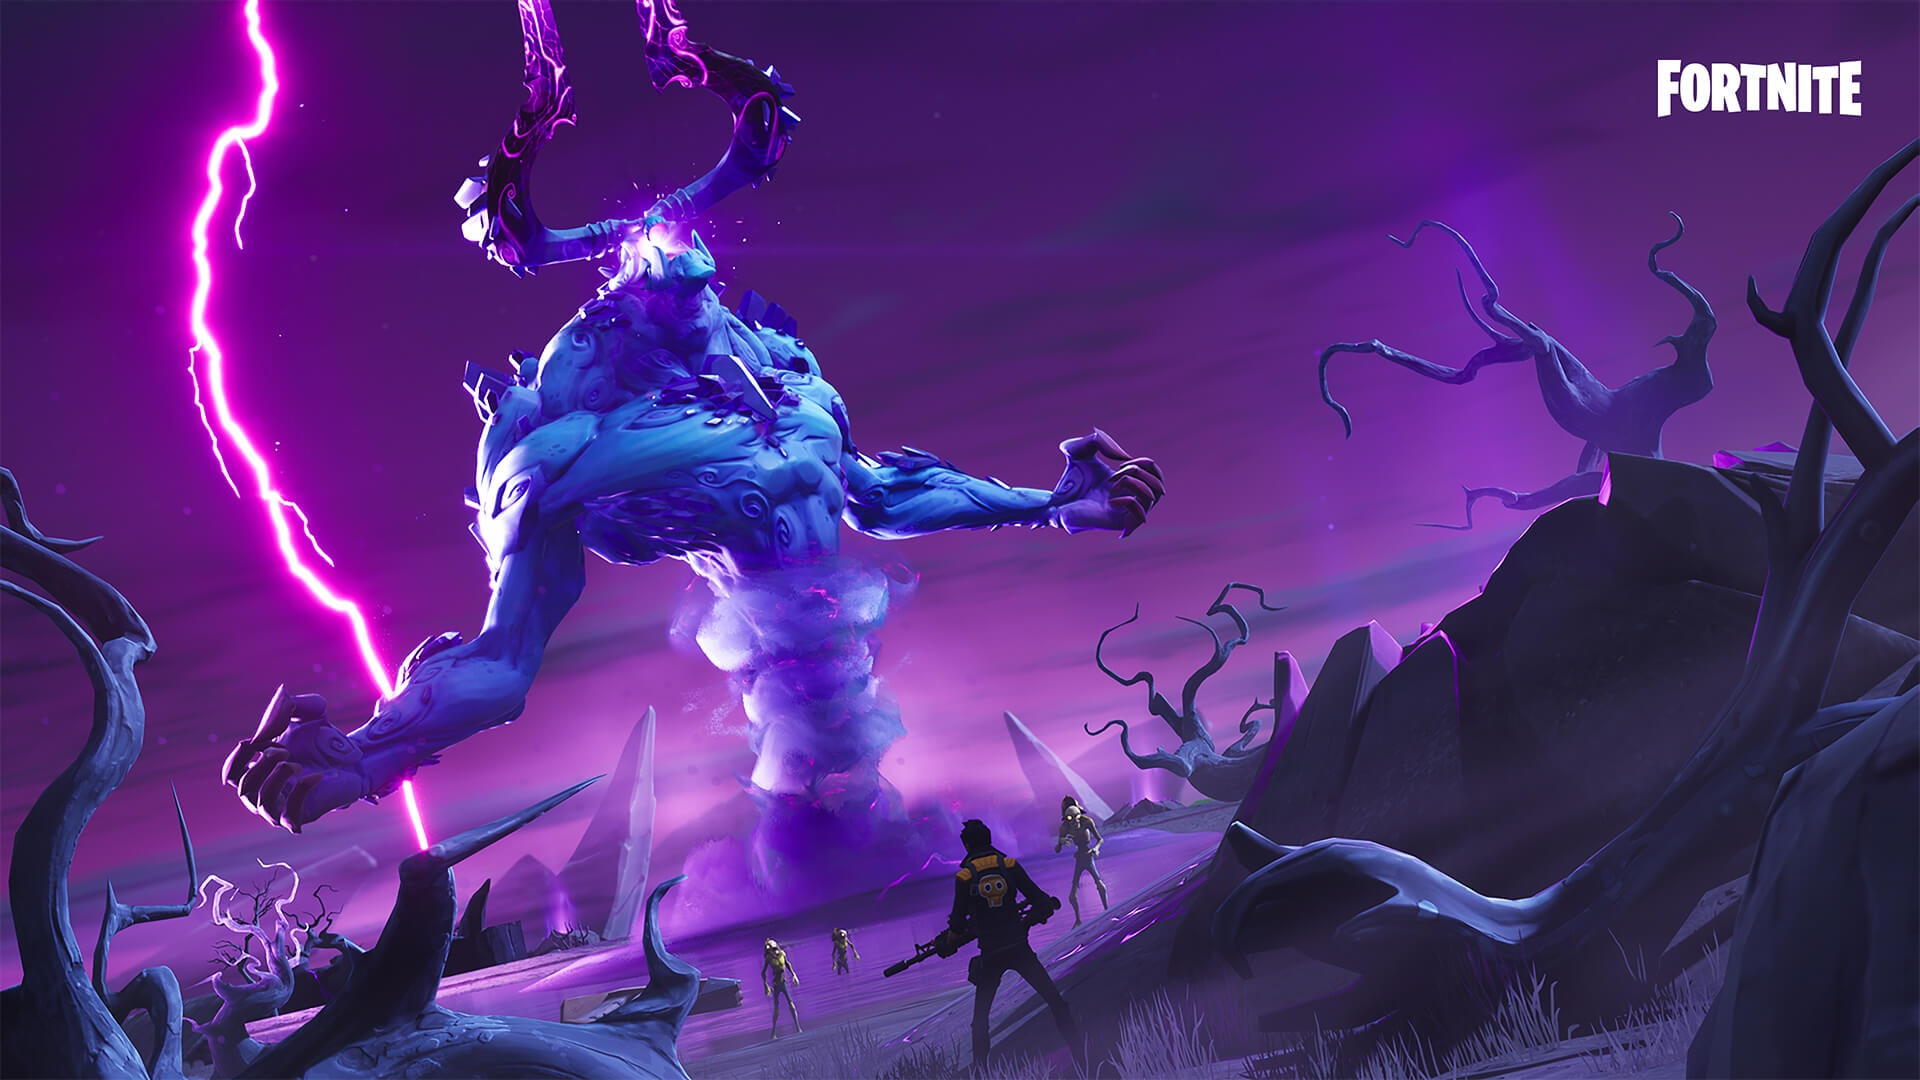 Fortnite Chapter 2 Just Devastated One Big Community Of Gamers